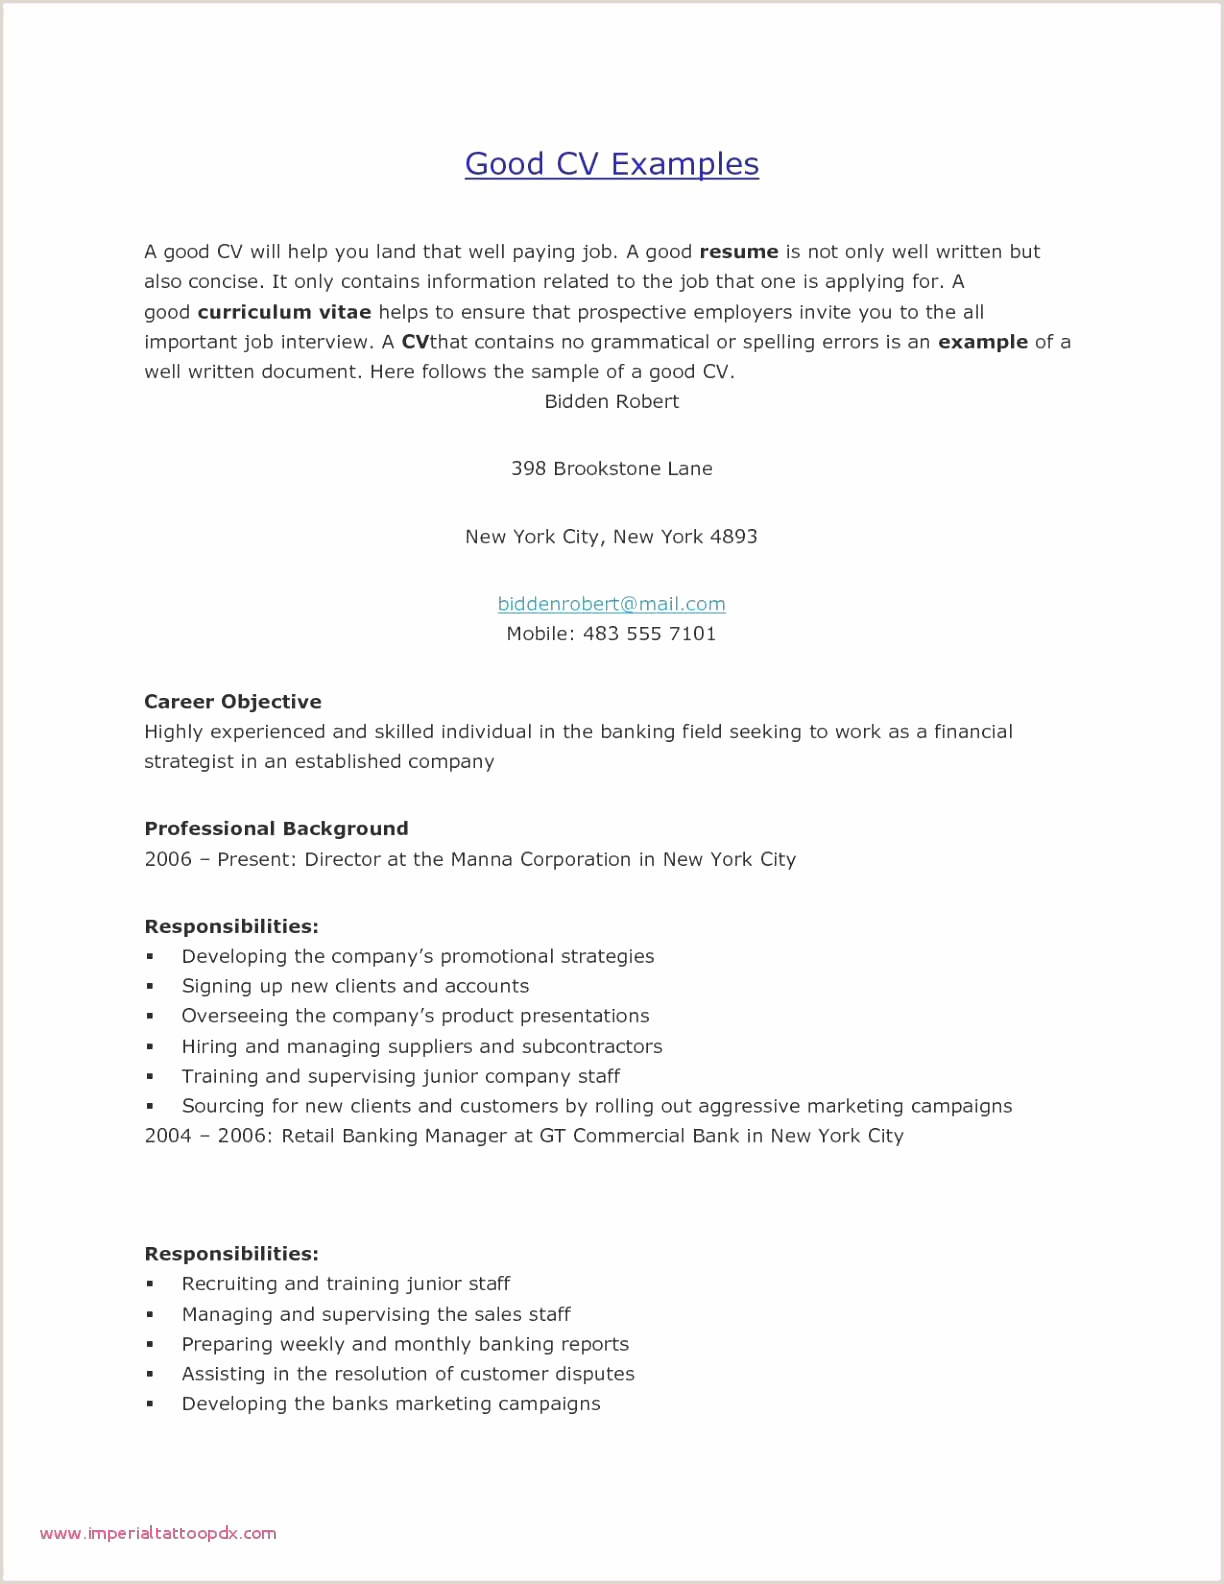 Cv Career Exemple Resume Career Objective Restaurant Valid